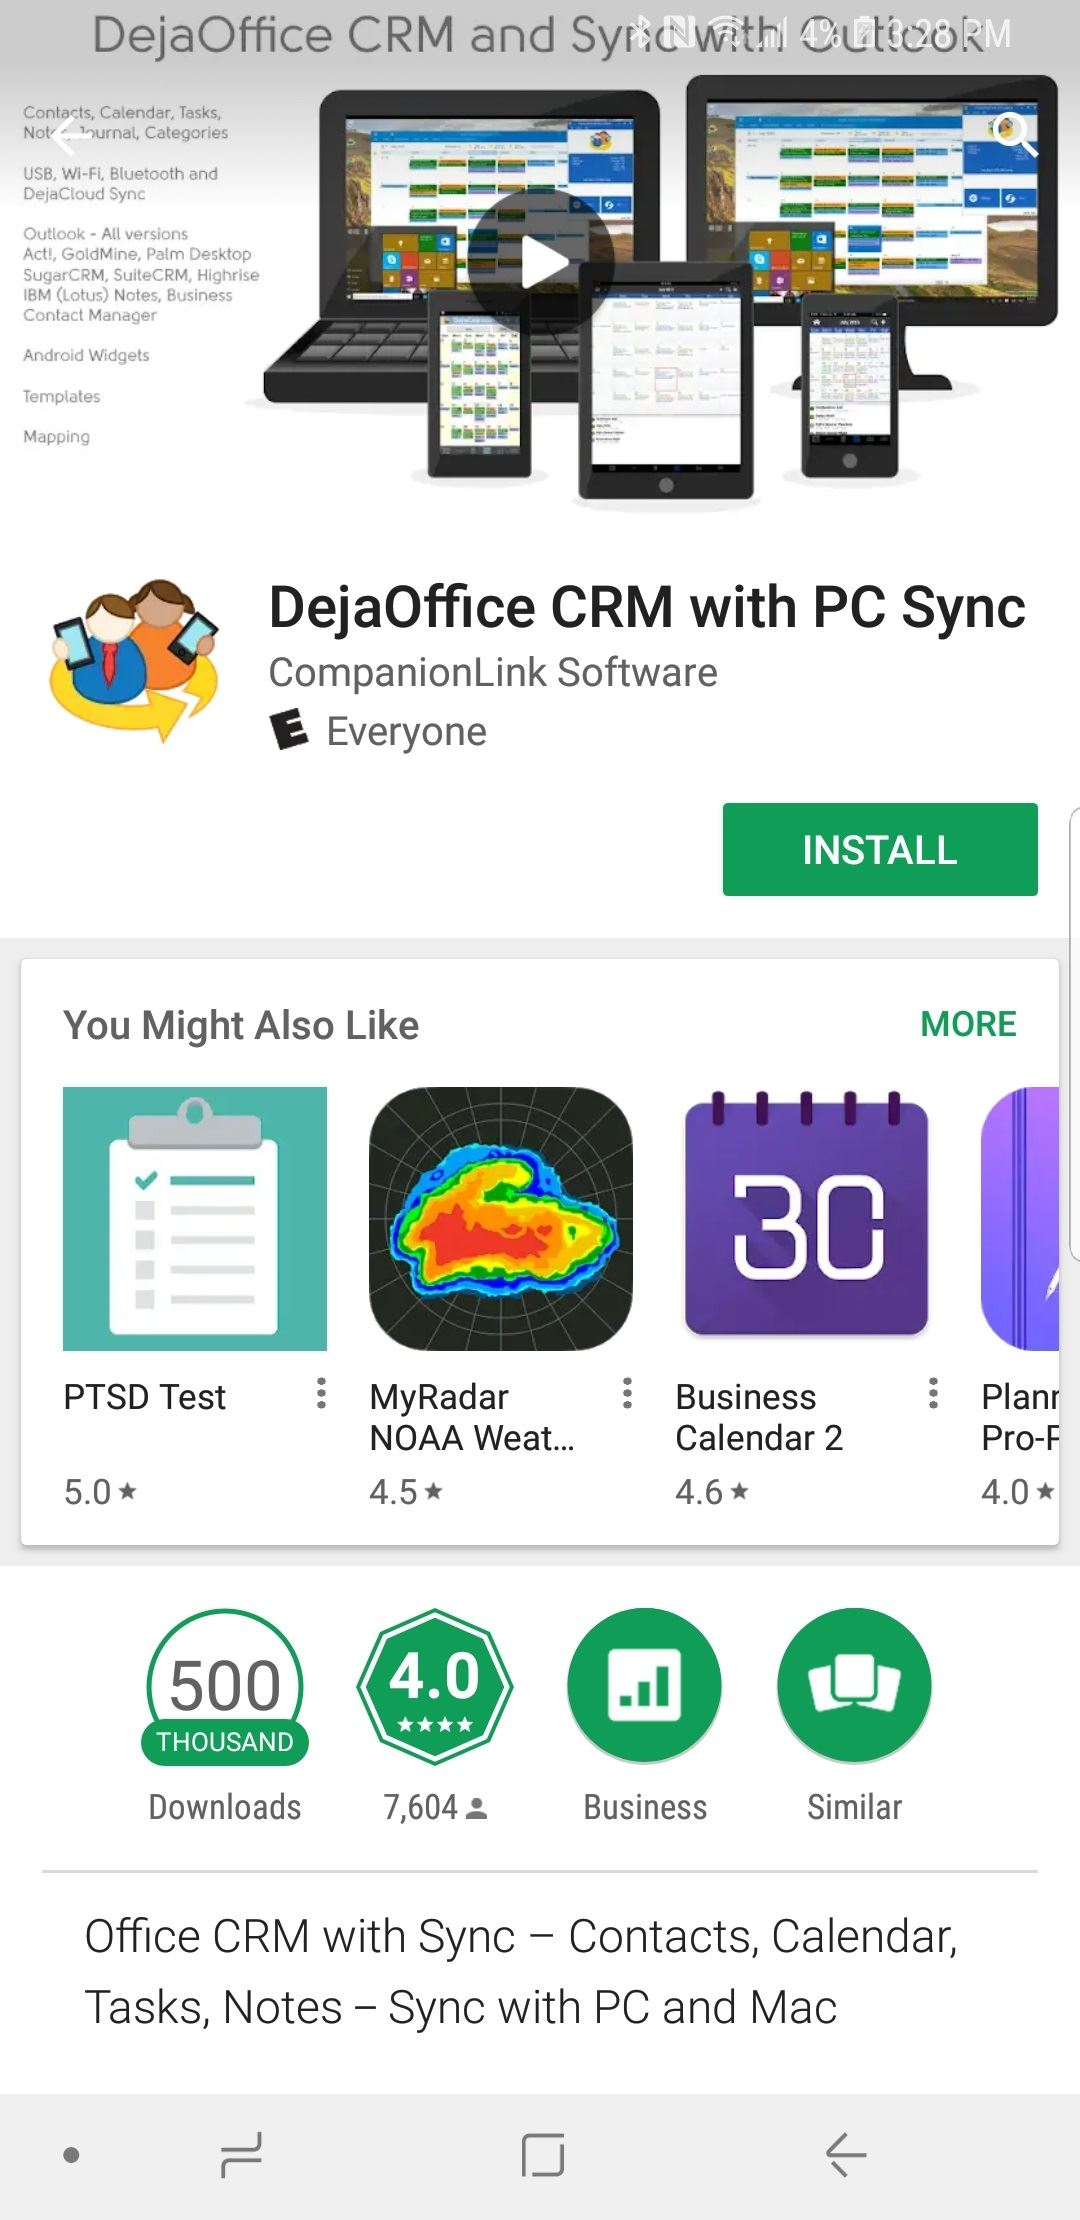 Download DejaOffice from the Google Play Store